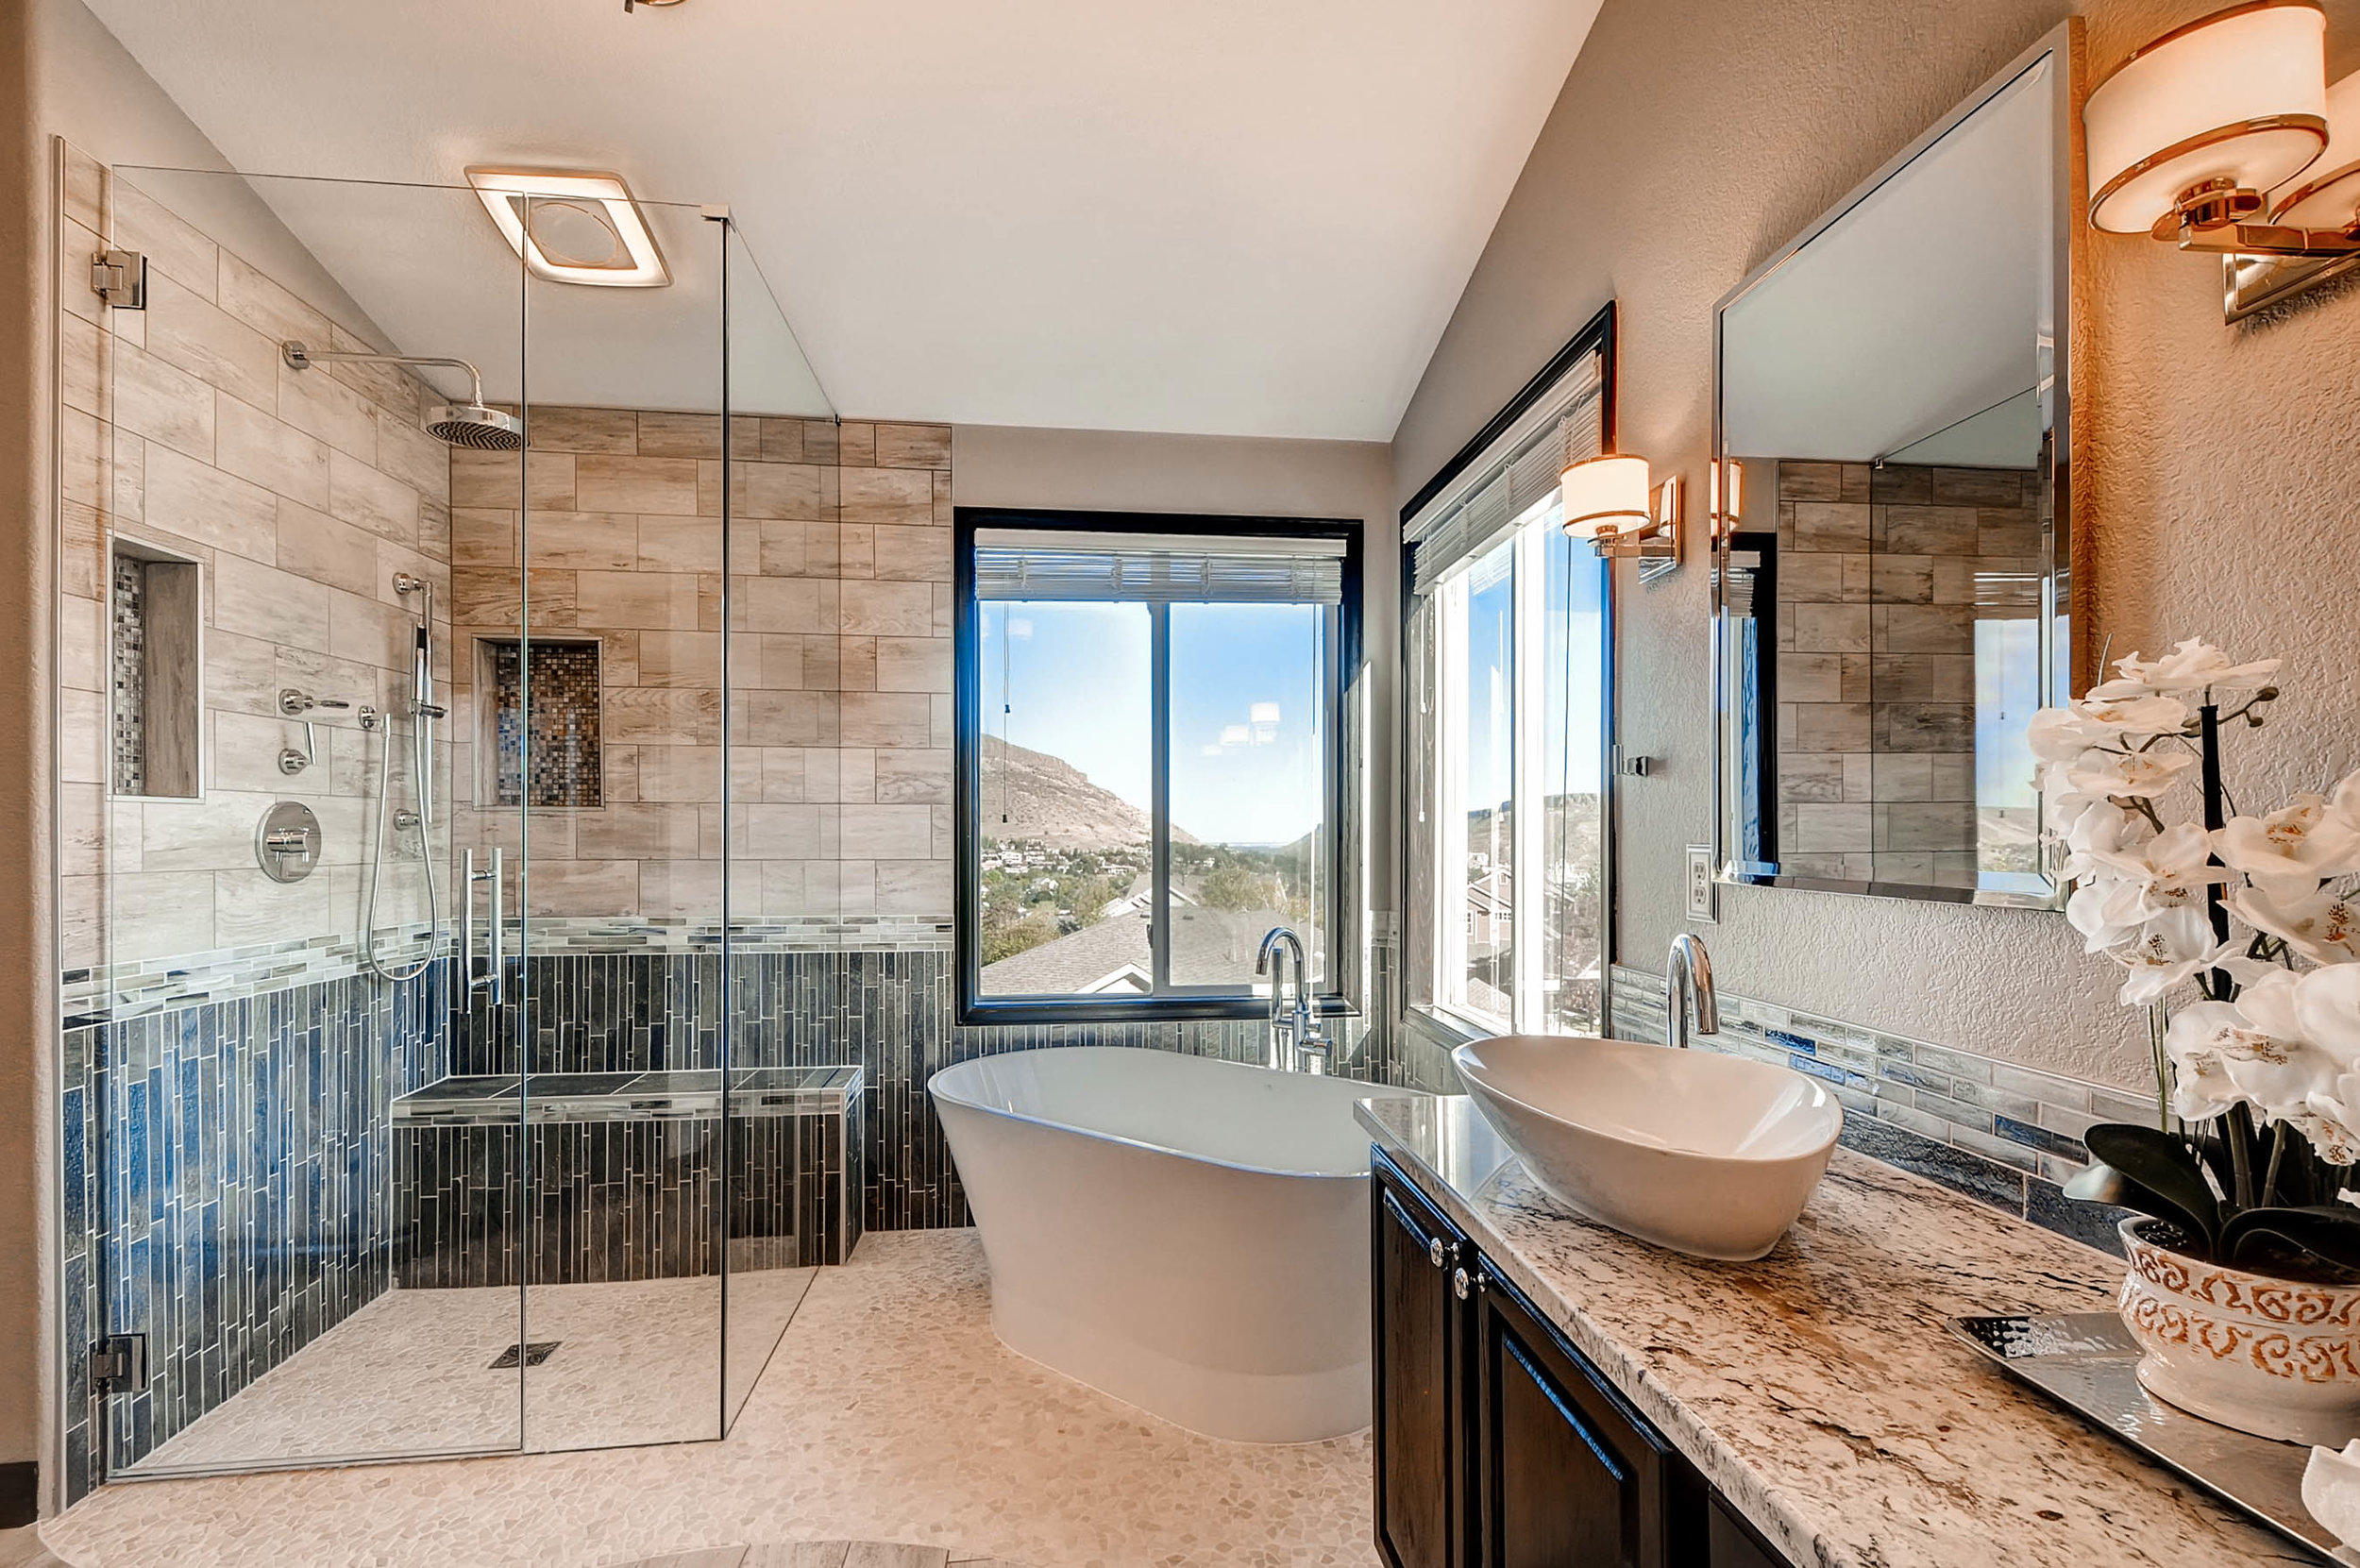 245 West Dr Golden CO 80403-print-017-9-2nd Floor Master Bathroom-2700x1794-300dpi.jpg